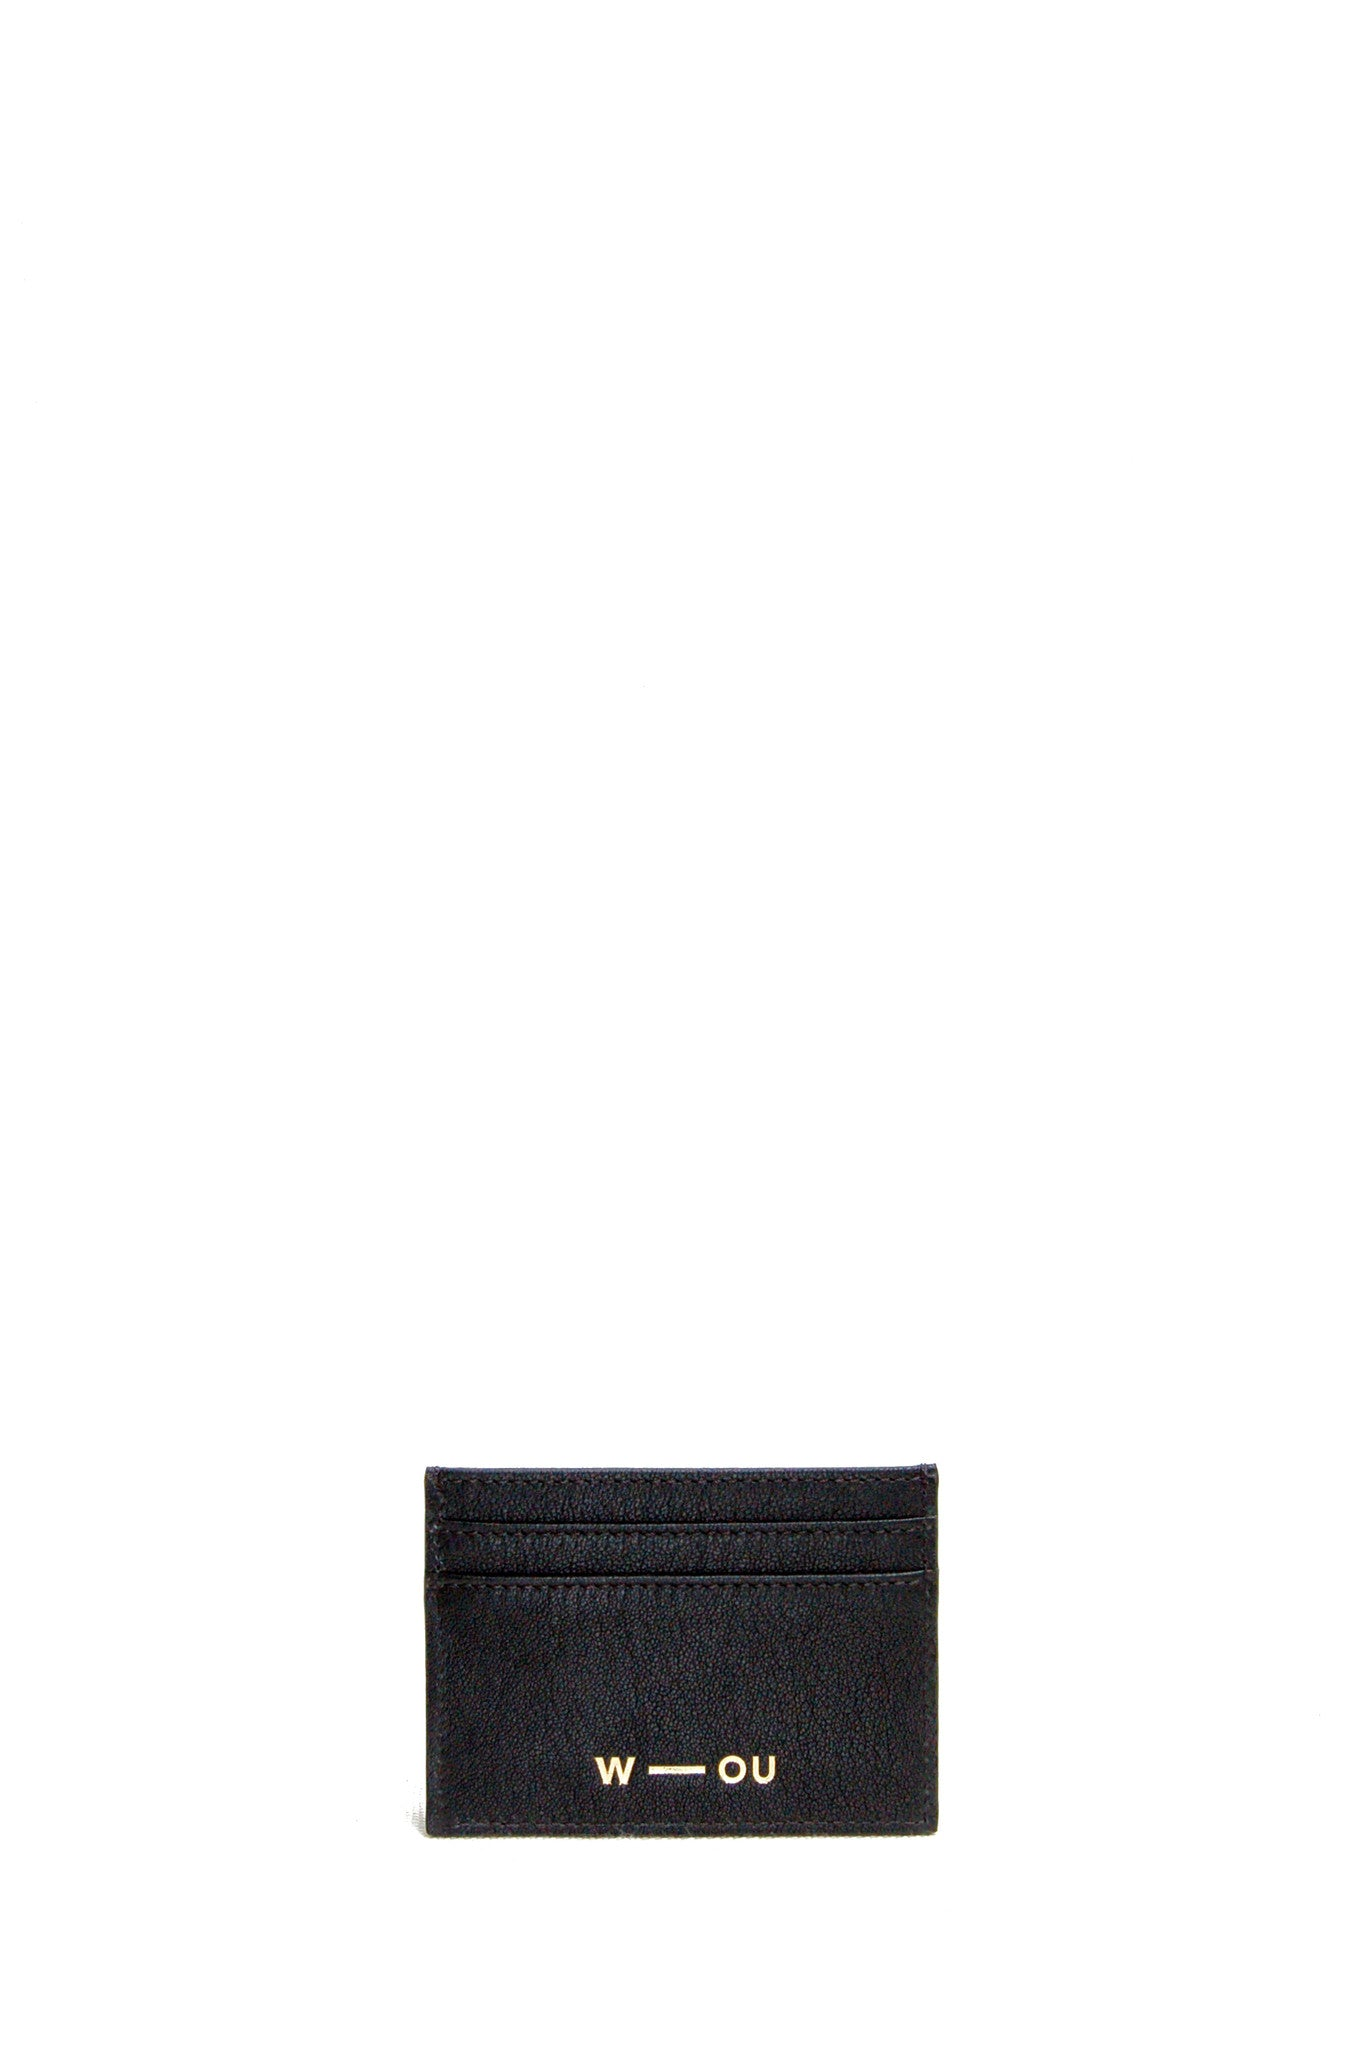 Wendee Ou: Gia cardholder black & bronze   Accessories > Wallets,Accessories -  Hiphunters Shop